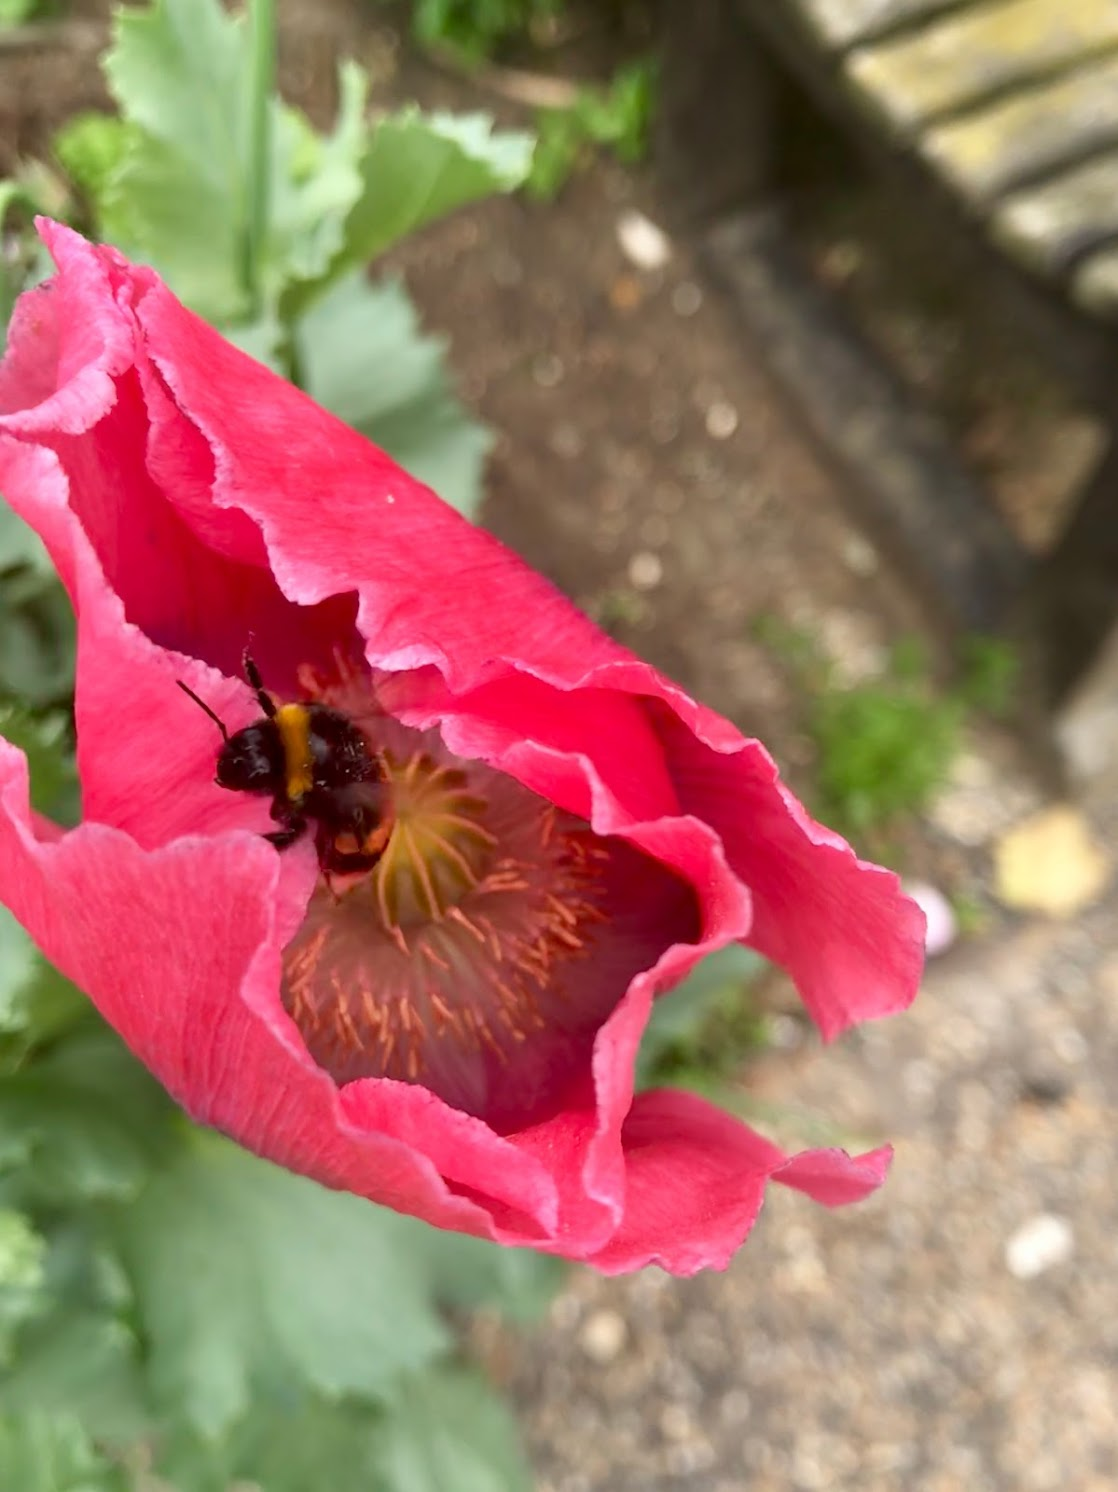 hyde park bee and pink flower.jpg